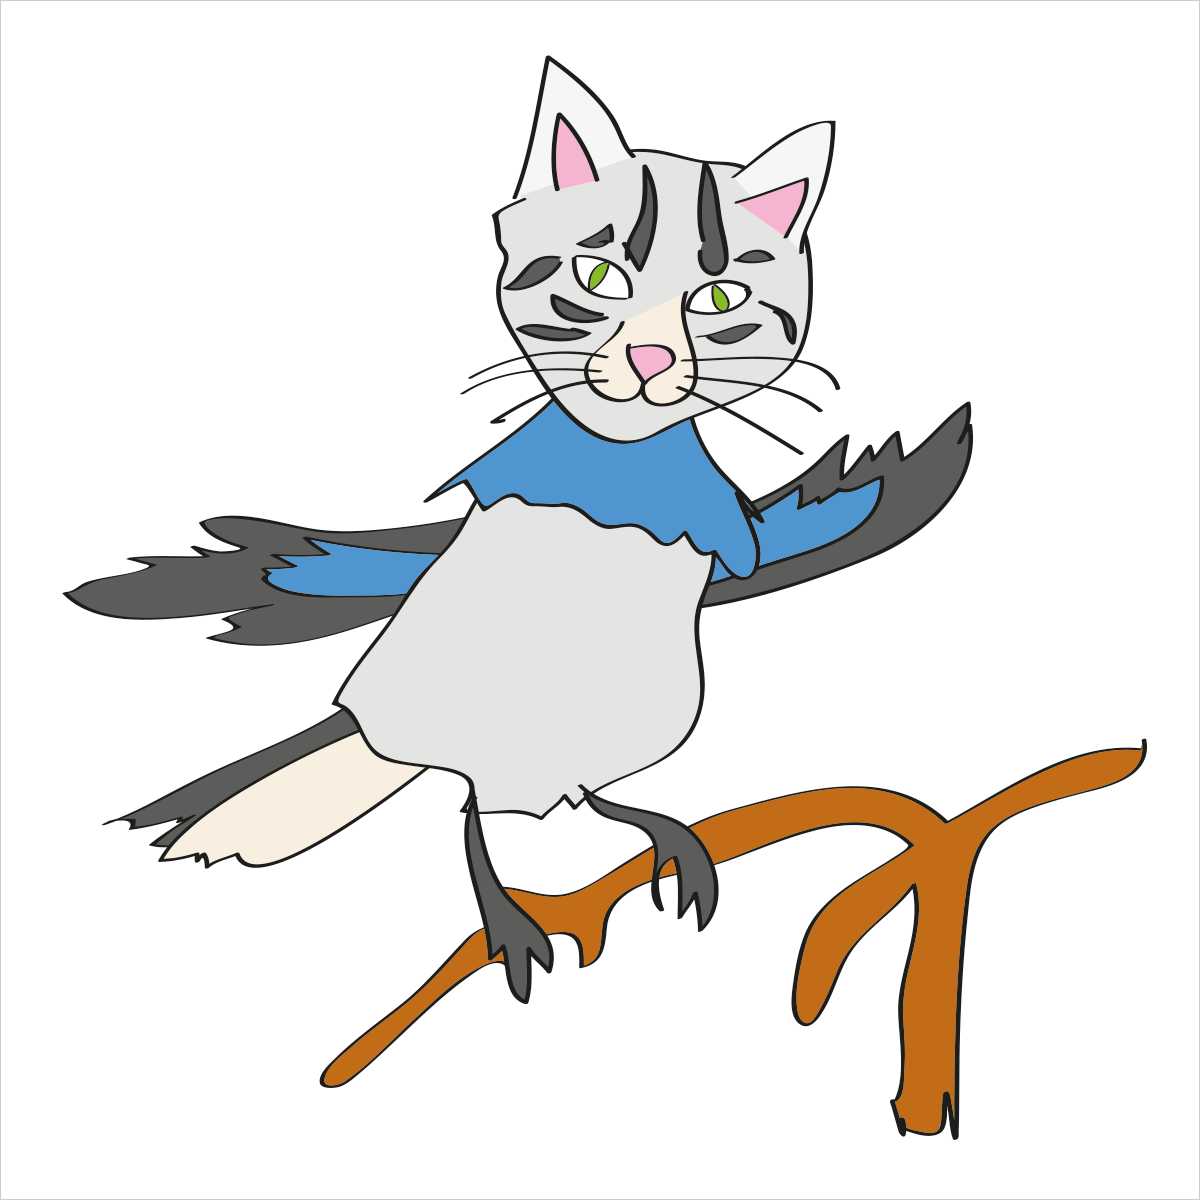 He has a beautiful singing voice and lets you know who's boss. He is CATBIRD